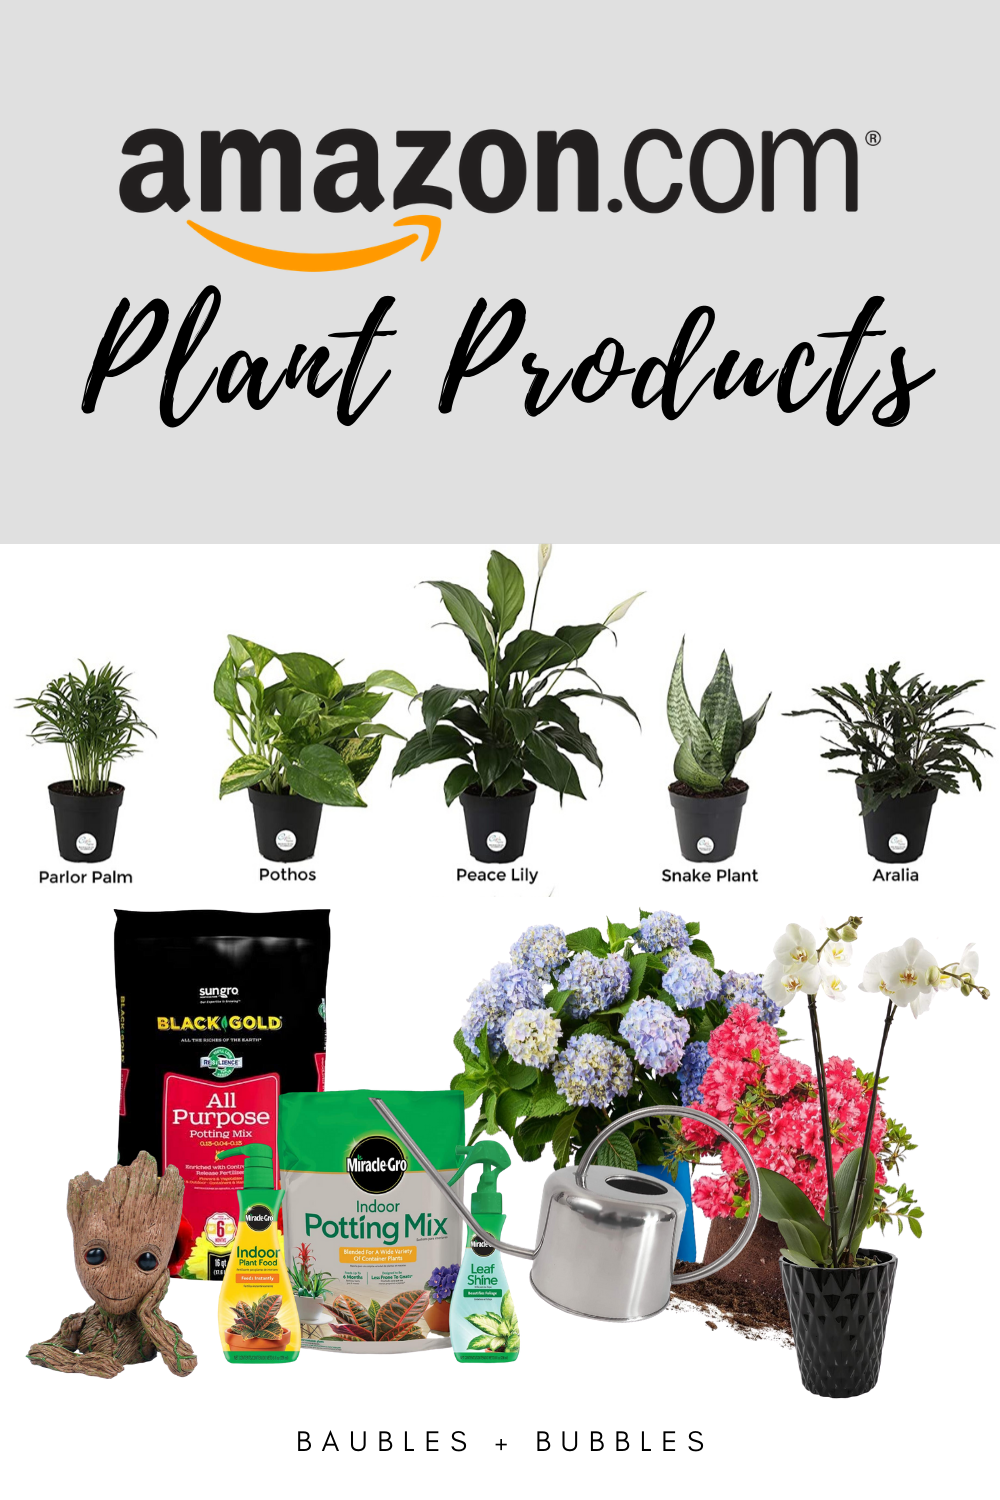 Amazon Essentials - Must Have Plant Products | Baubles + Bubbles